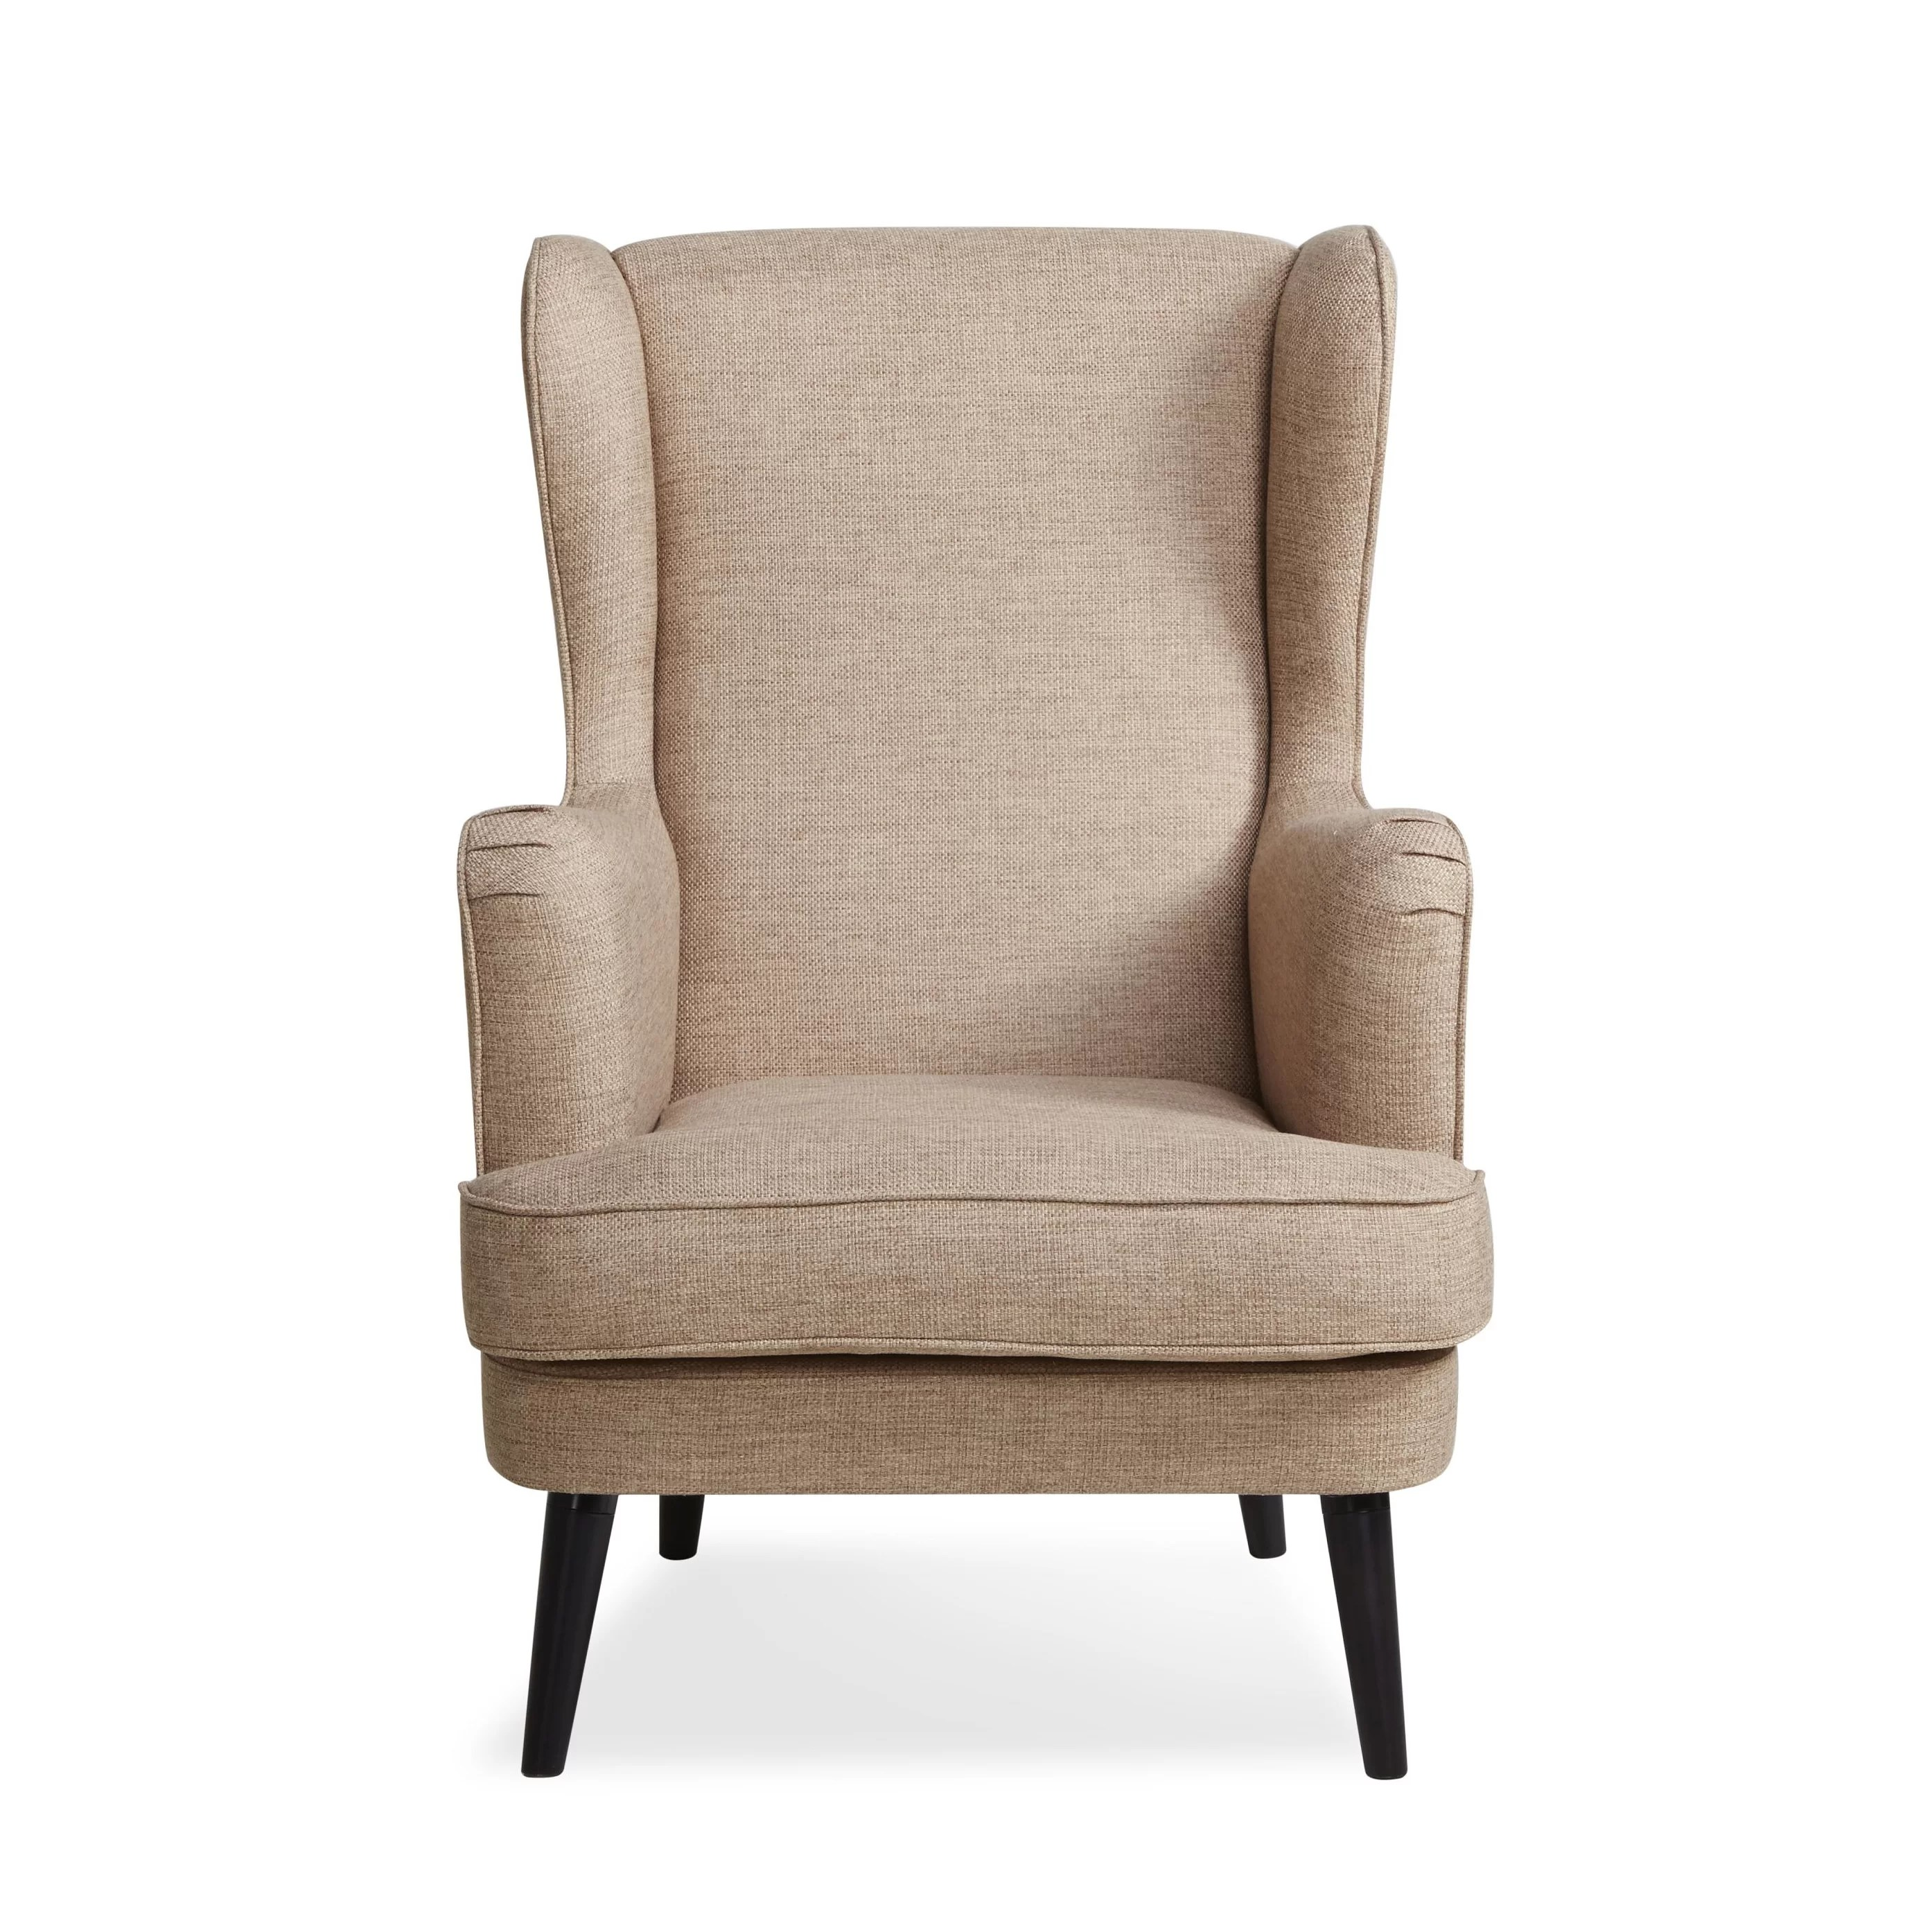 Wayfair Wingback Chair Darby Home Co Brigance Wingback Chair And Reviews Wayfair